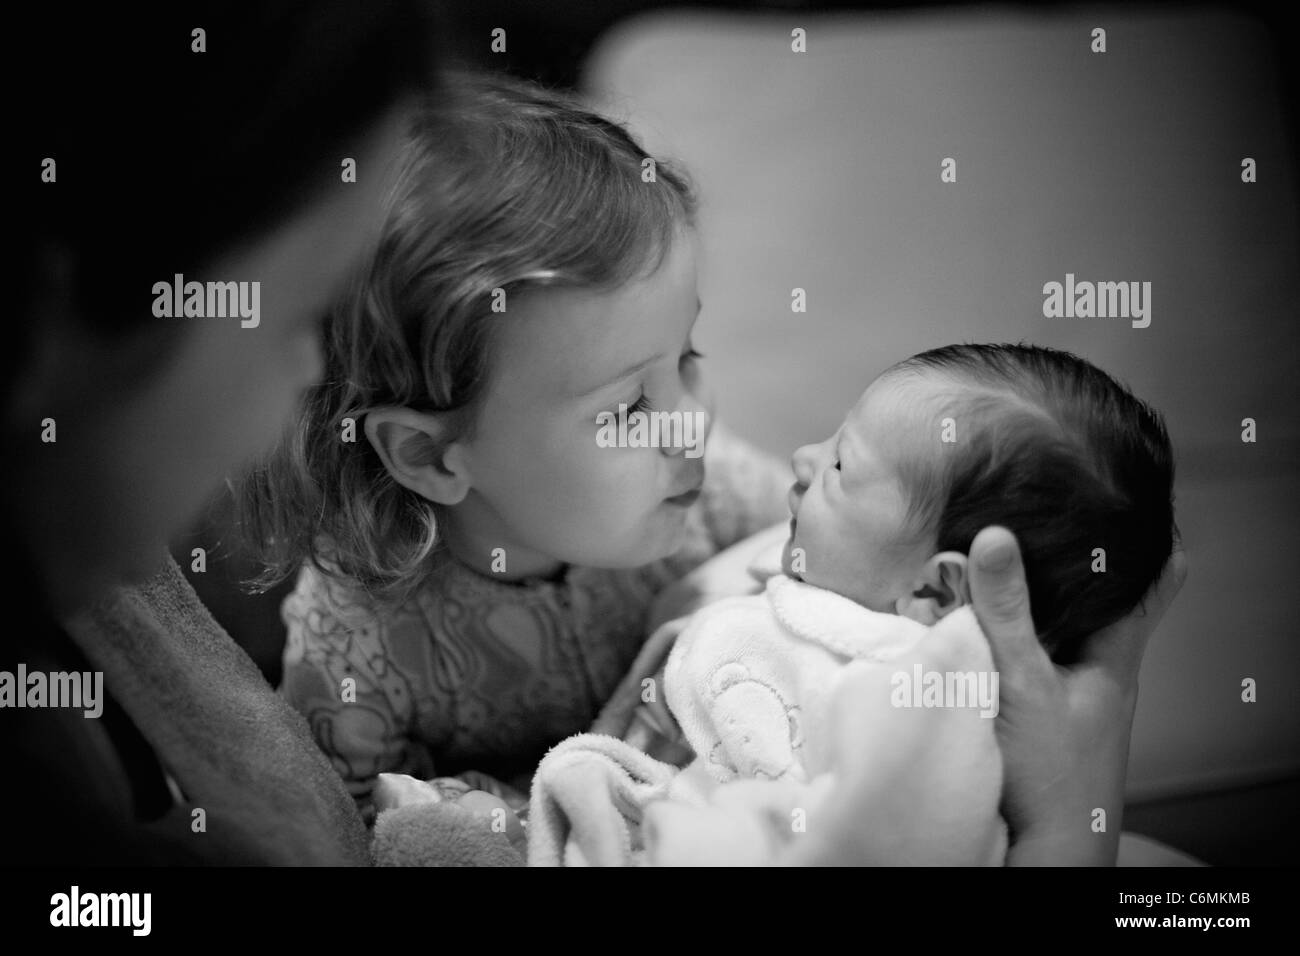 Young girl and her newborn baby sister - Stock Image